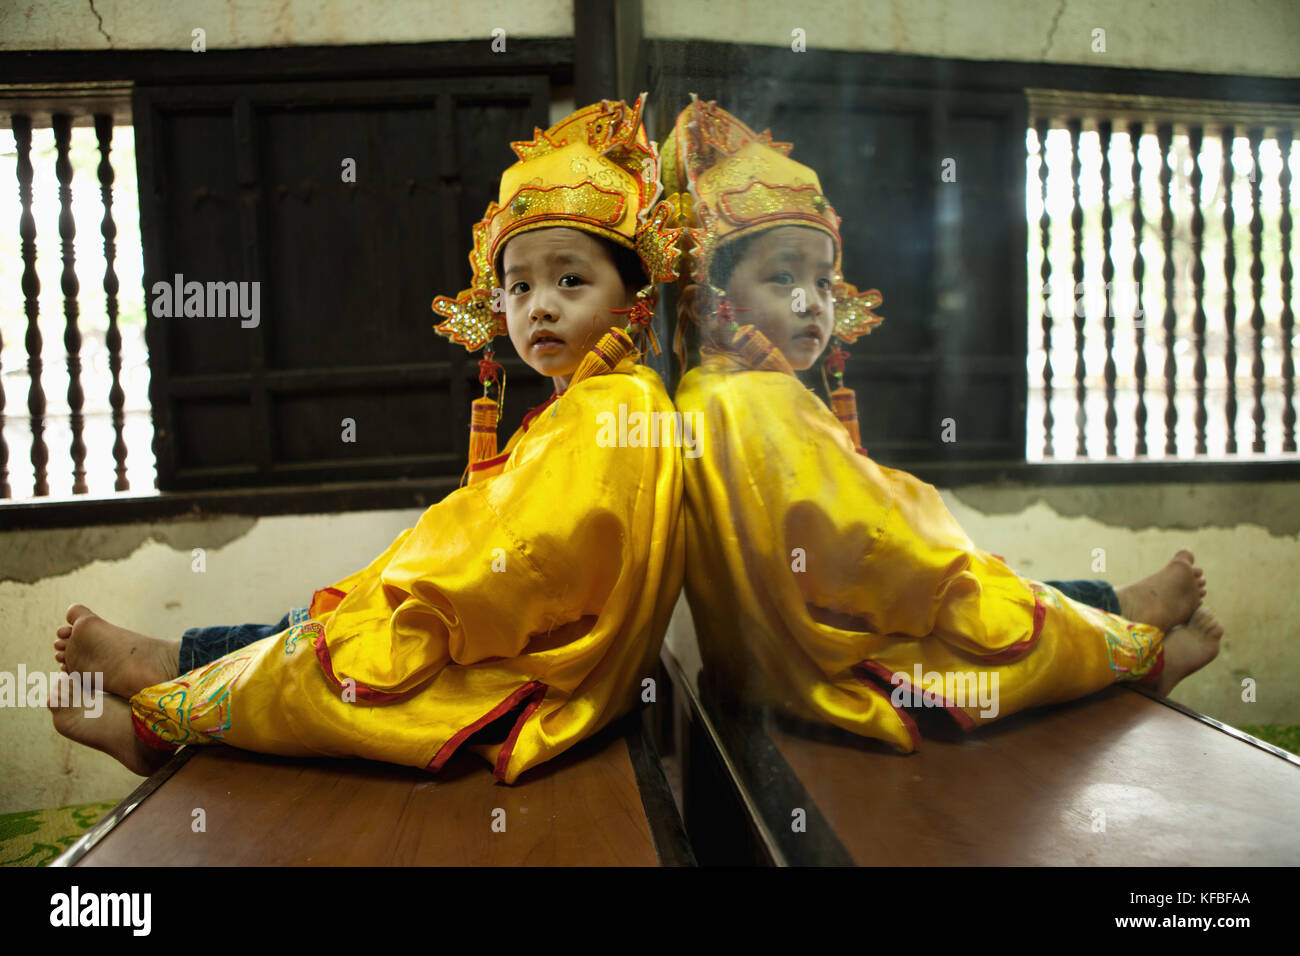 VIETNAM, Hue, Tu Duc Tomb, a young dancer is dressed in traditional Vietnamese costume and waits to perform with - Stock Image